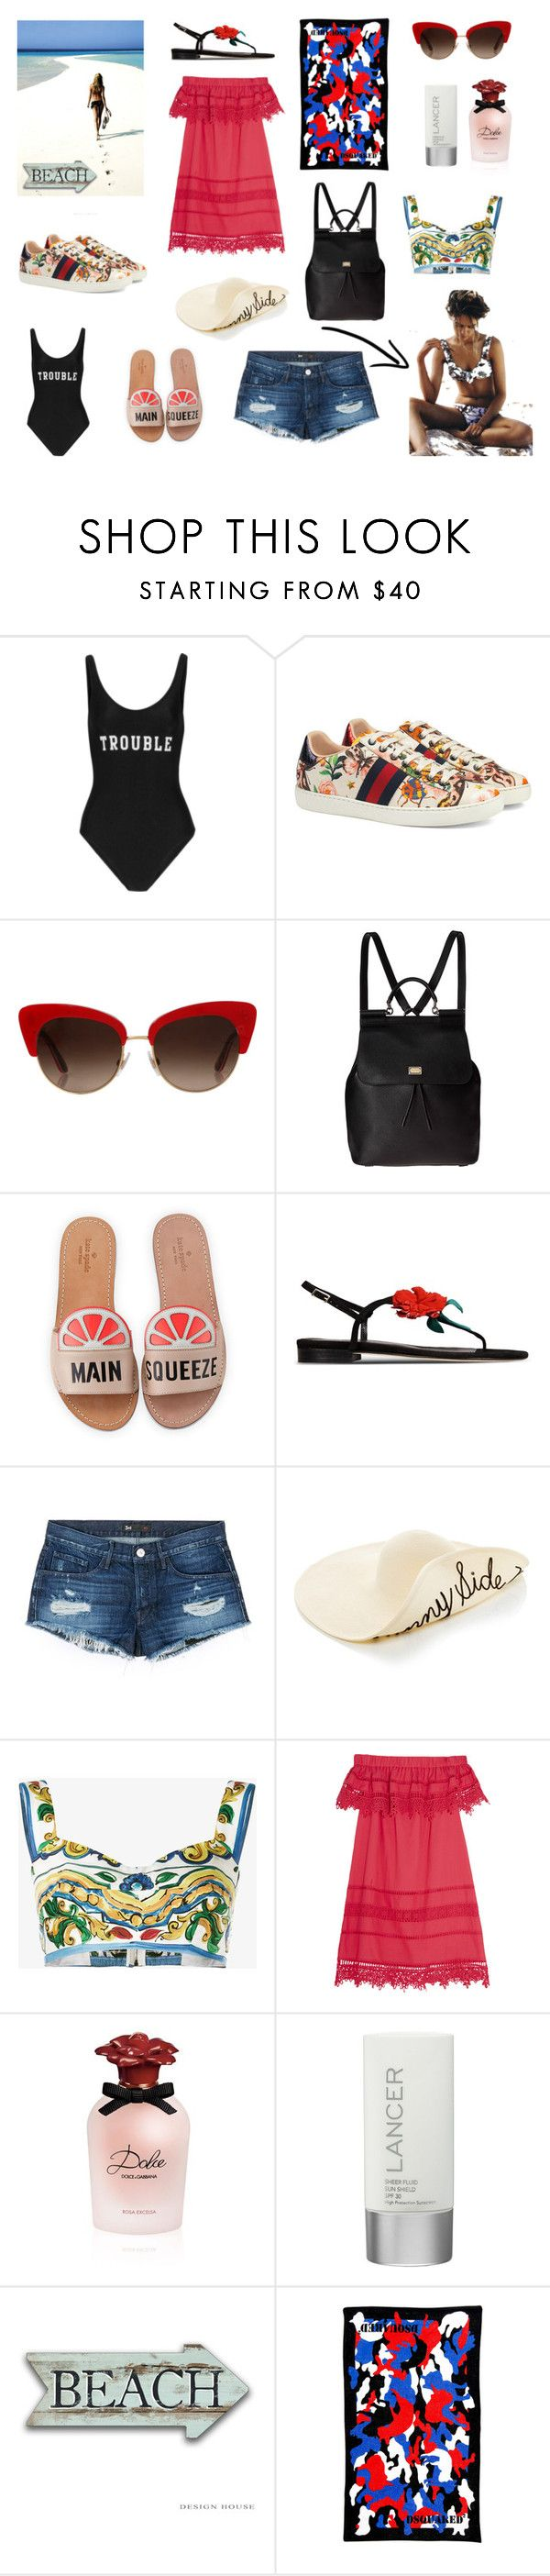 """* Croatia Here We go! *"" by dpintainha on Polyvore featuring ADRIANA DEGREAS, Gucci, Dolce&Gabbana, Kate Spade, Oscar de la Renta, 3x1, Sea, New York, Lancer Dermatology and Dsquared2"